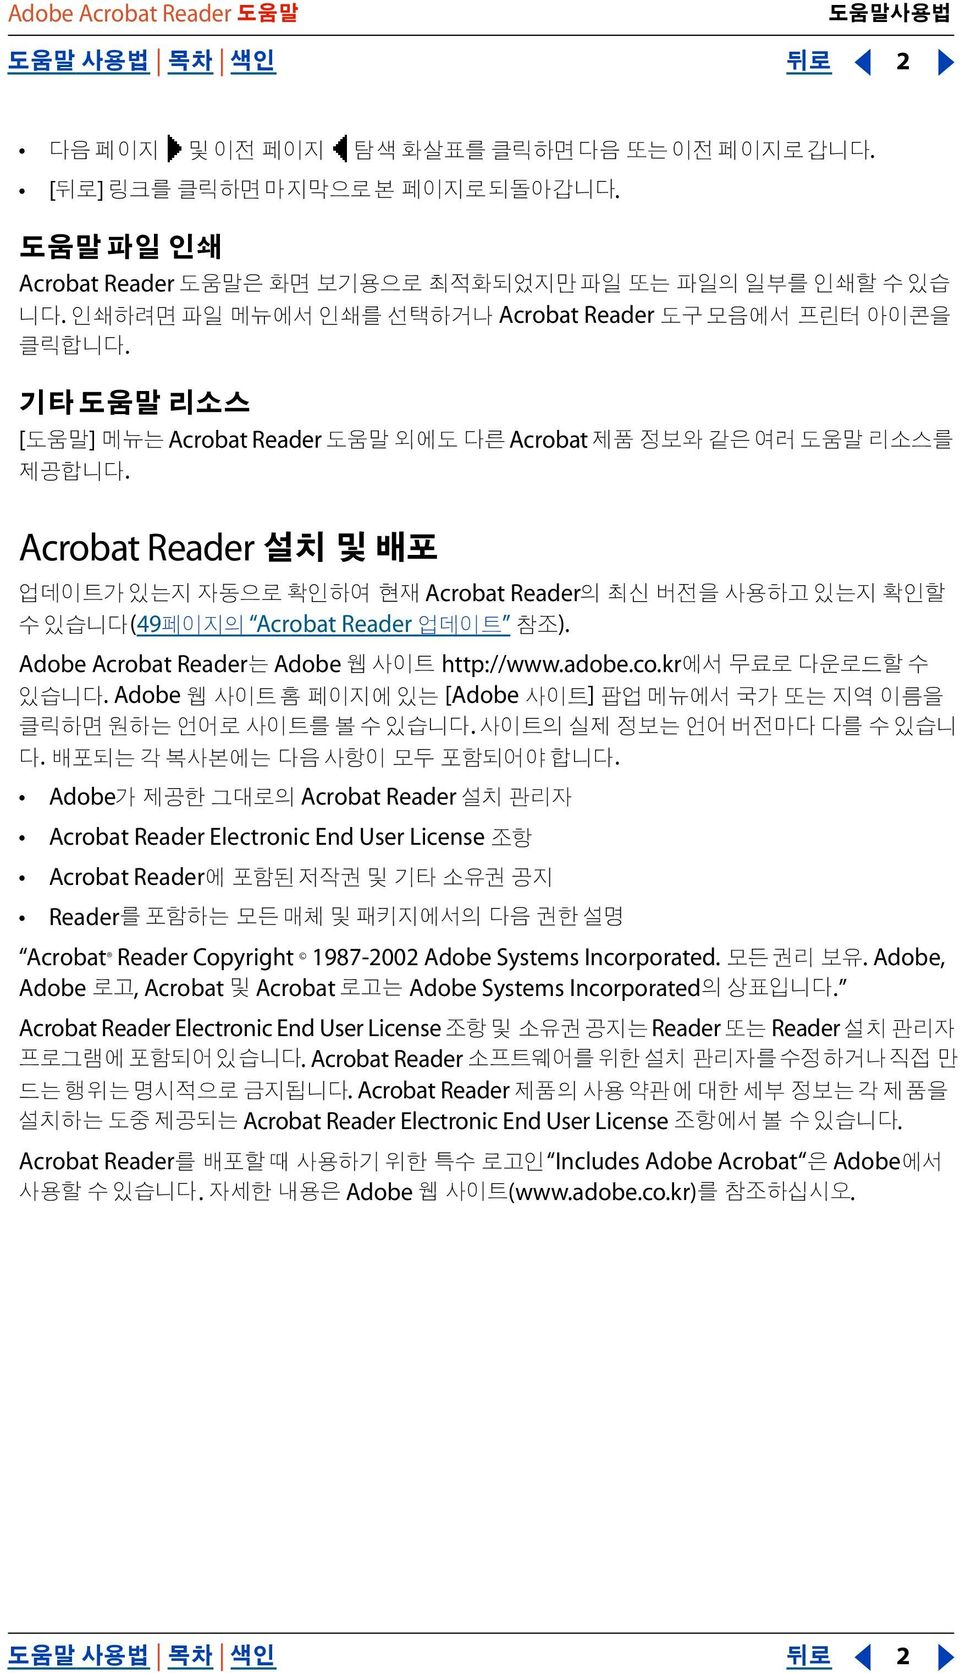 .. Adobe Acrobat Reader Acrobat Reader Electronic End User License Acrobat Reader Reader Acrobat Reader Copyright 1987-2002 Adobe Systems Incorporated.